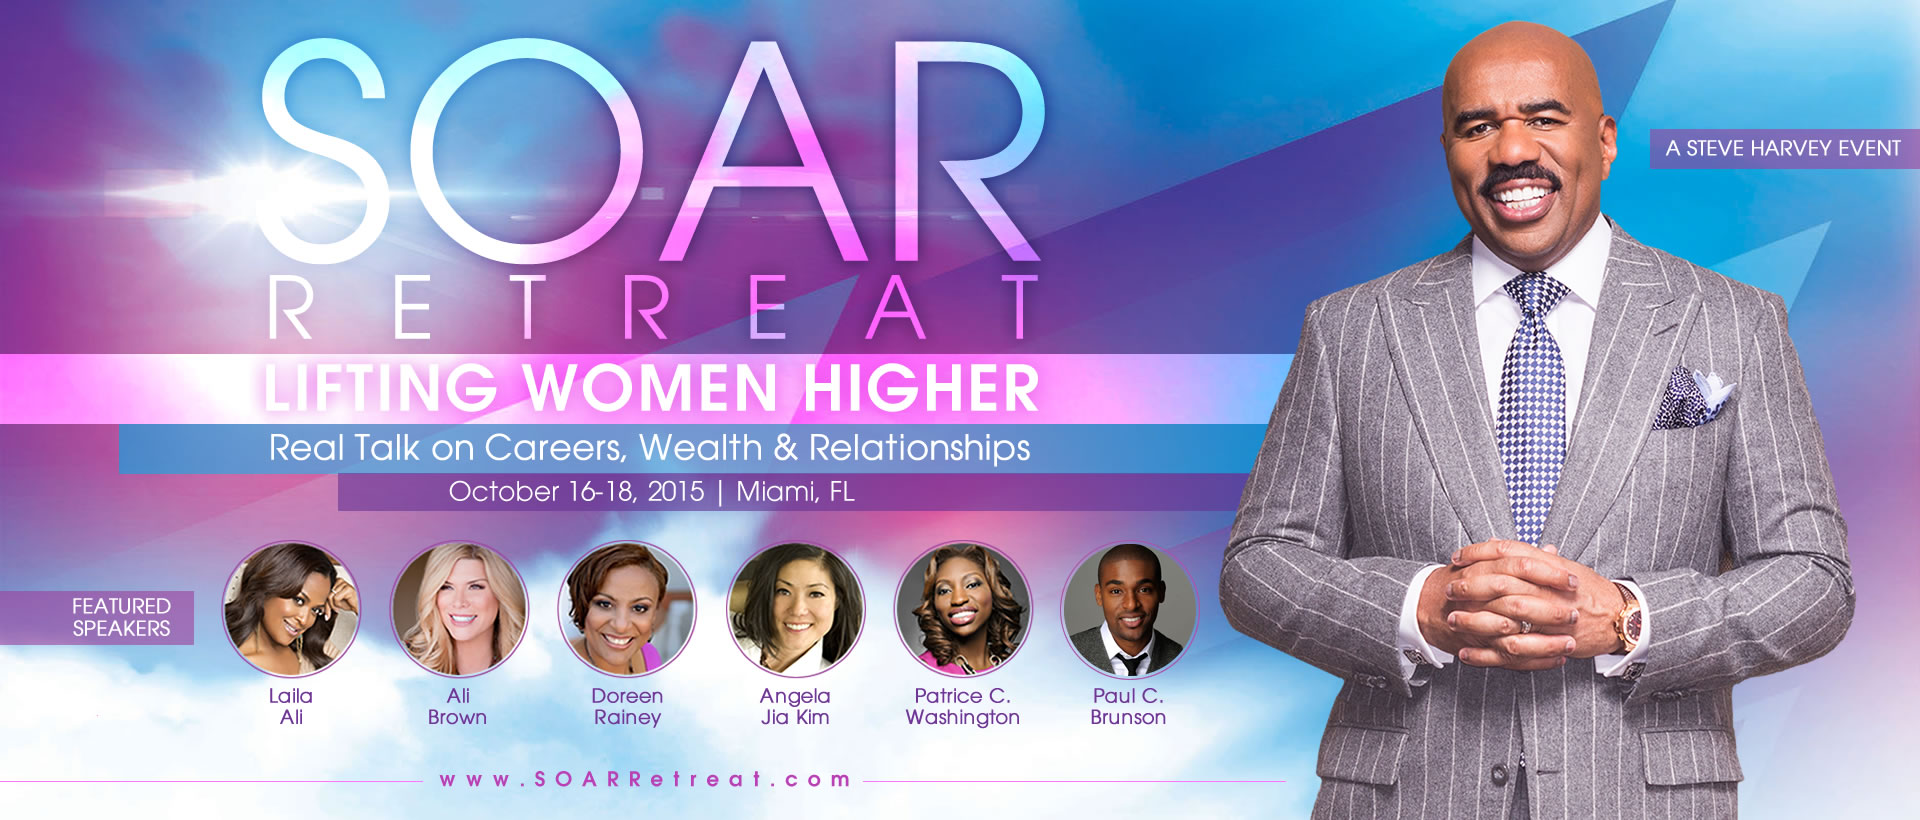 SOAR Retreat with Steve Harvey Miami, Florida